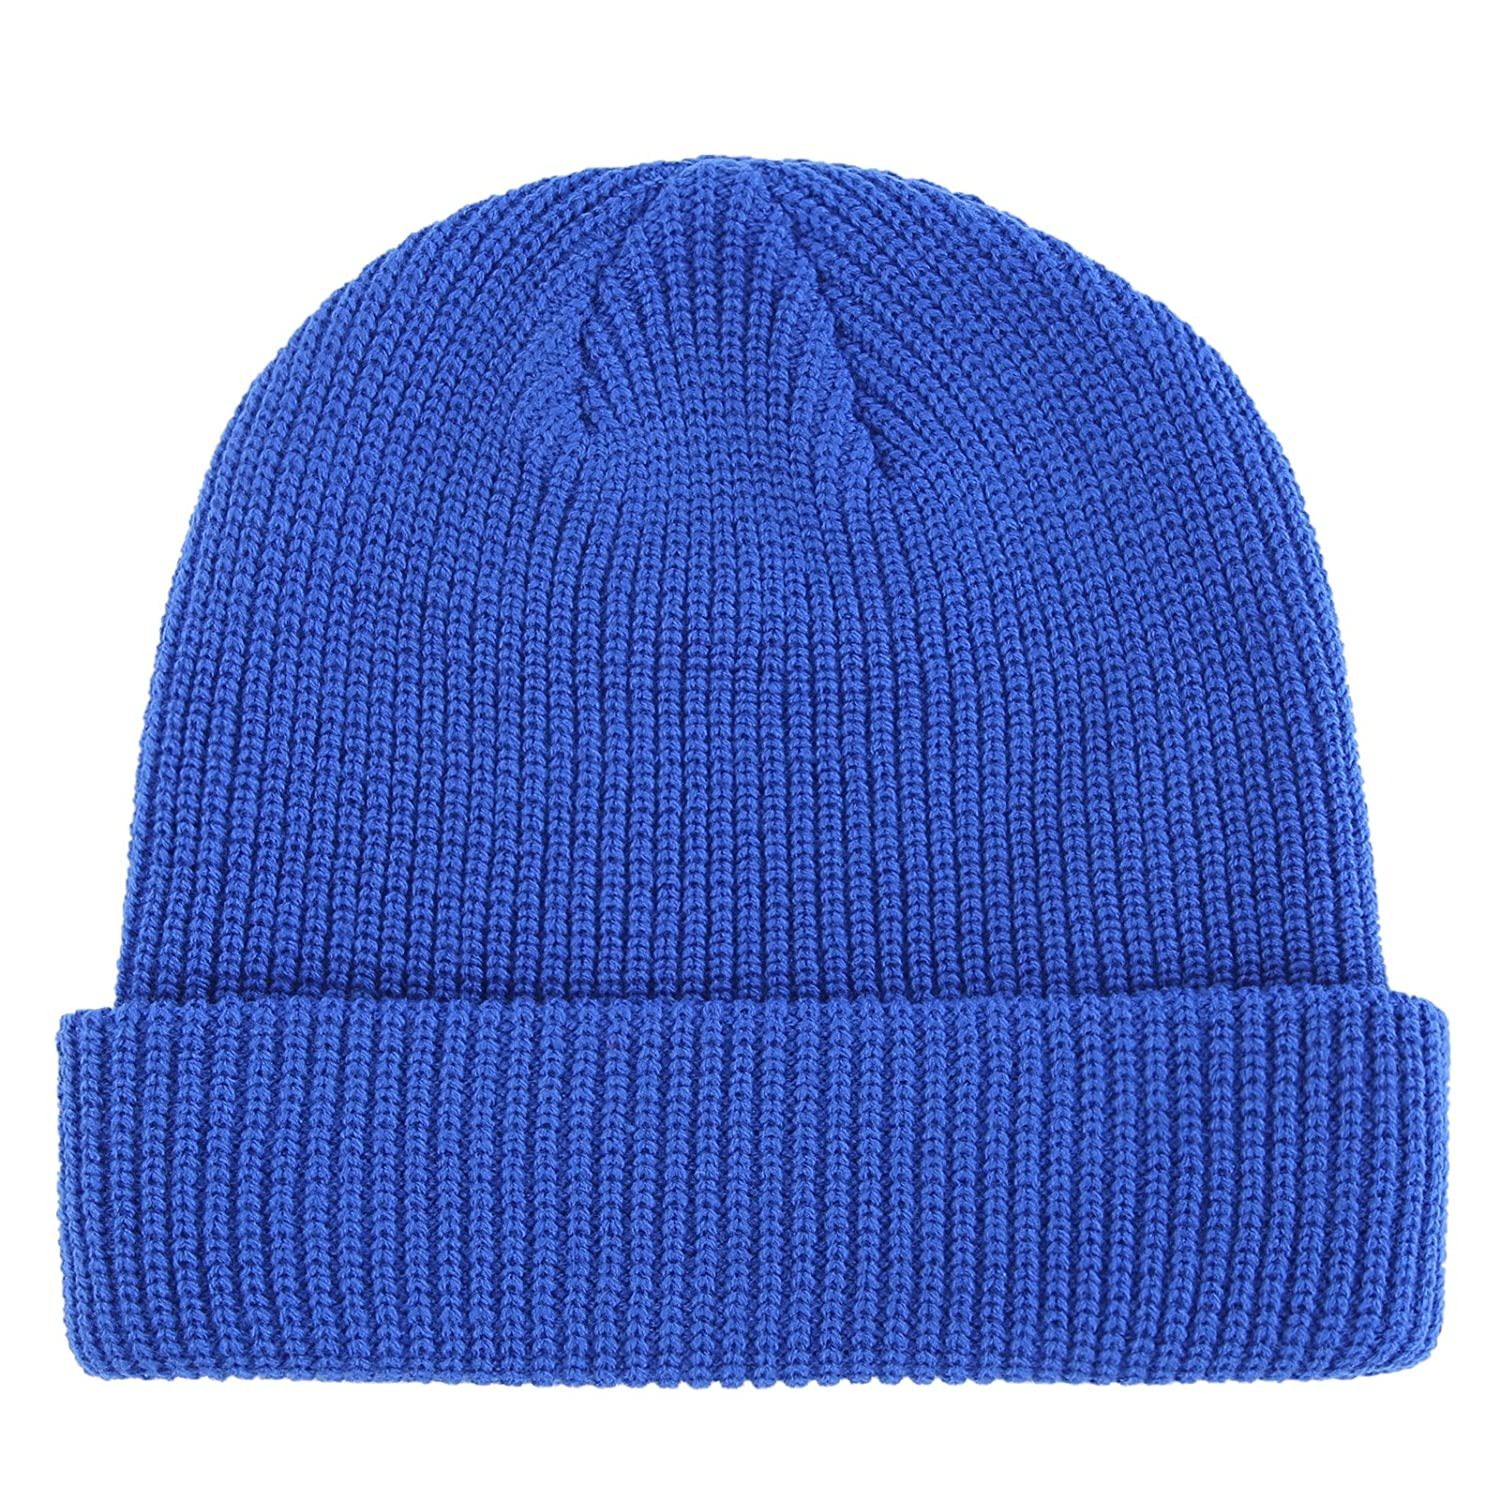 Connectyle Classic Men's Warm Winter Hats Acrylic Knit Cuff Beanie Cap Daily Beanie Hat 55 60cm F084